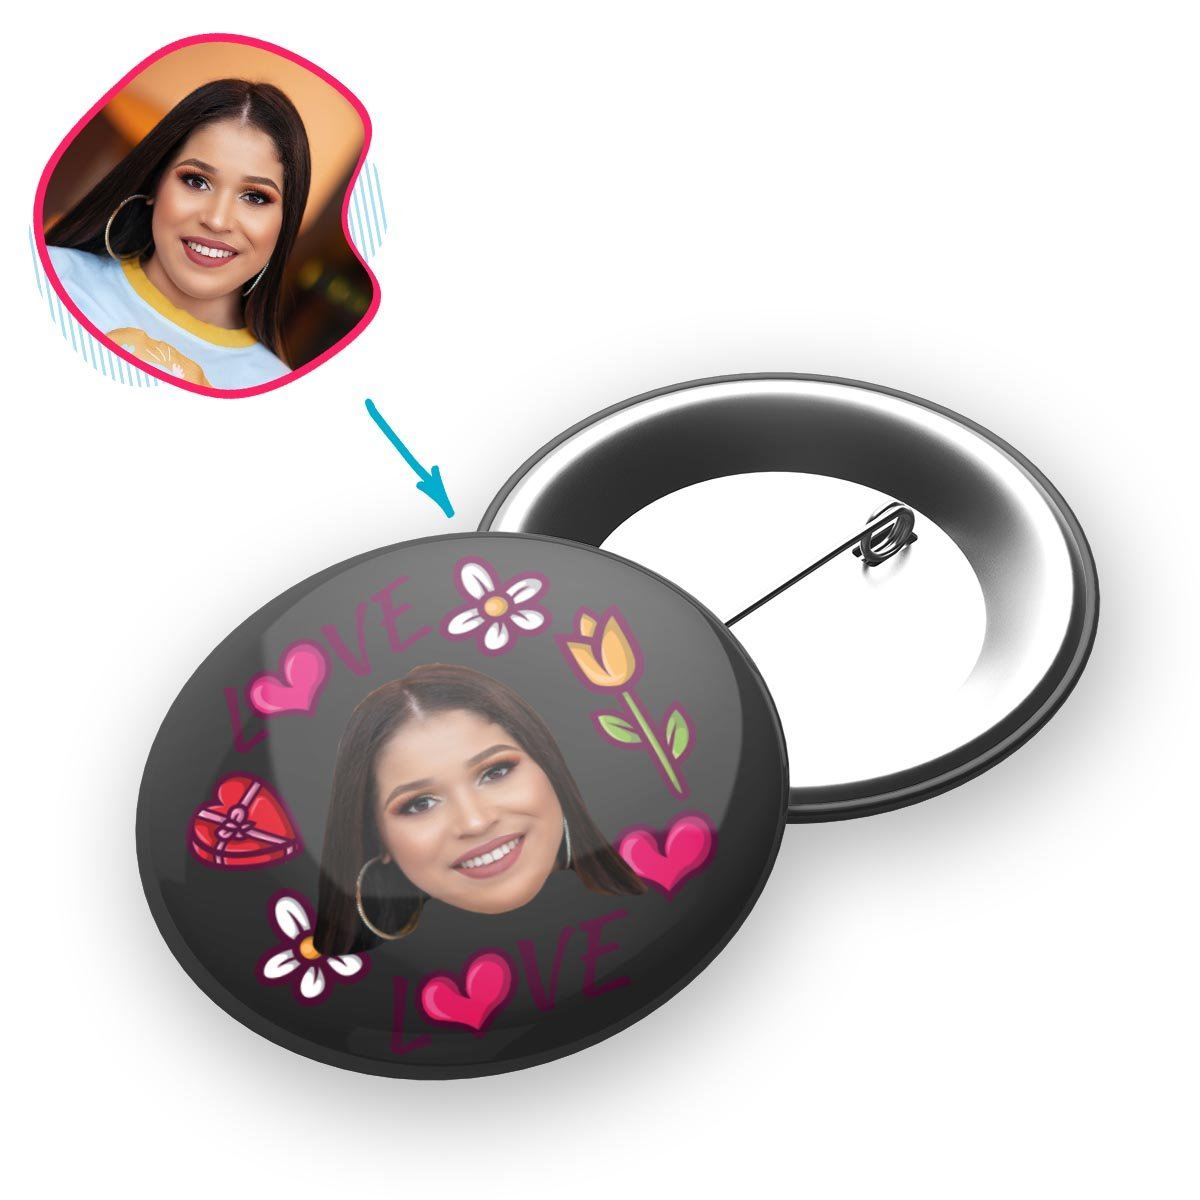 dark Hearts and Flowers pin personalized with photo of face printed on it